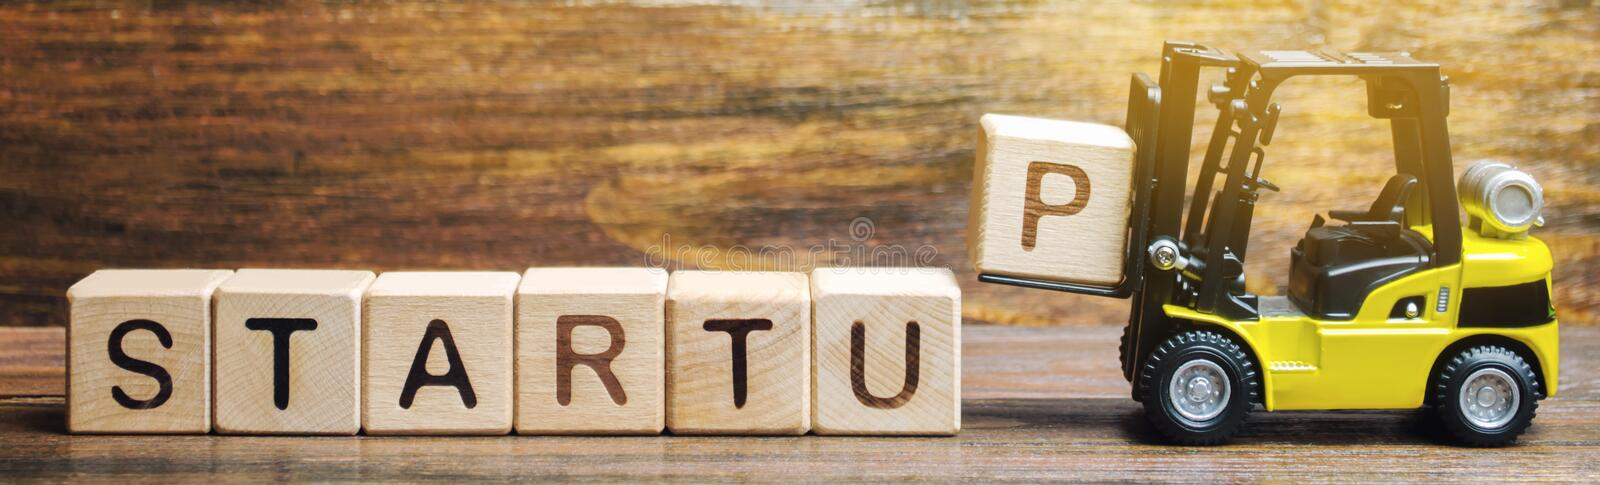 Wooden blocks with the word Startup. Temporary structure designed to find and implement a scalable business model. The concept of. Raising funds for a startup stock images